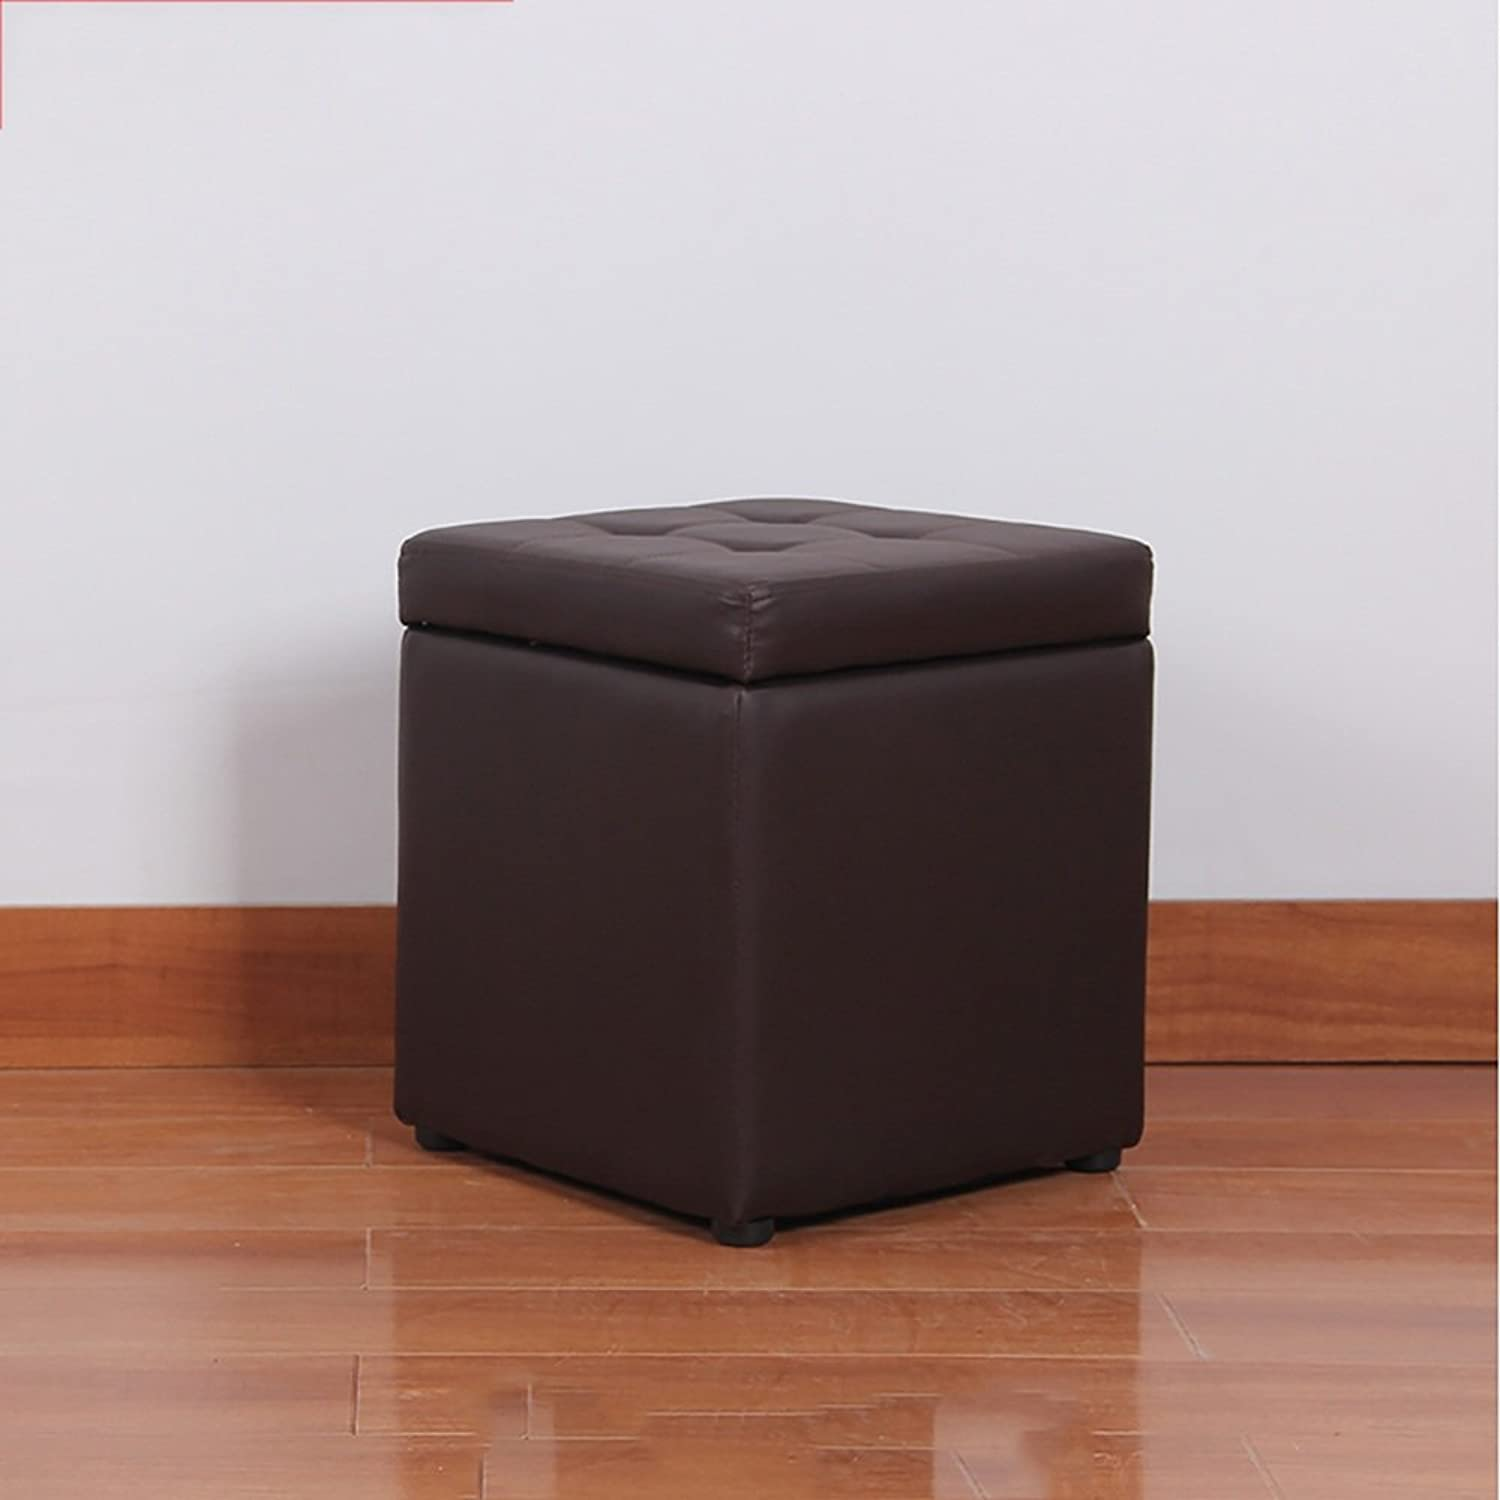 XRXY Creative Footstool   Changing His shoes Stool   Fitting Room Square Stool   Living Room Storage Stool (11 colors Optional) ( color   Brown )